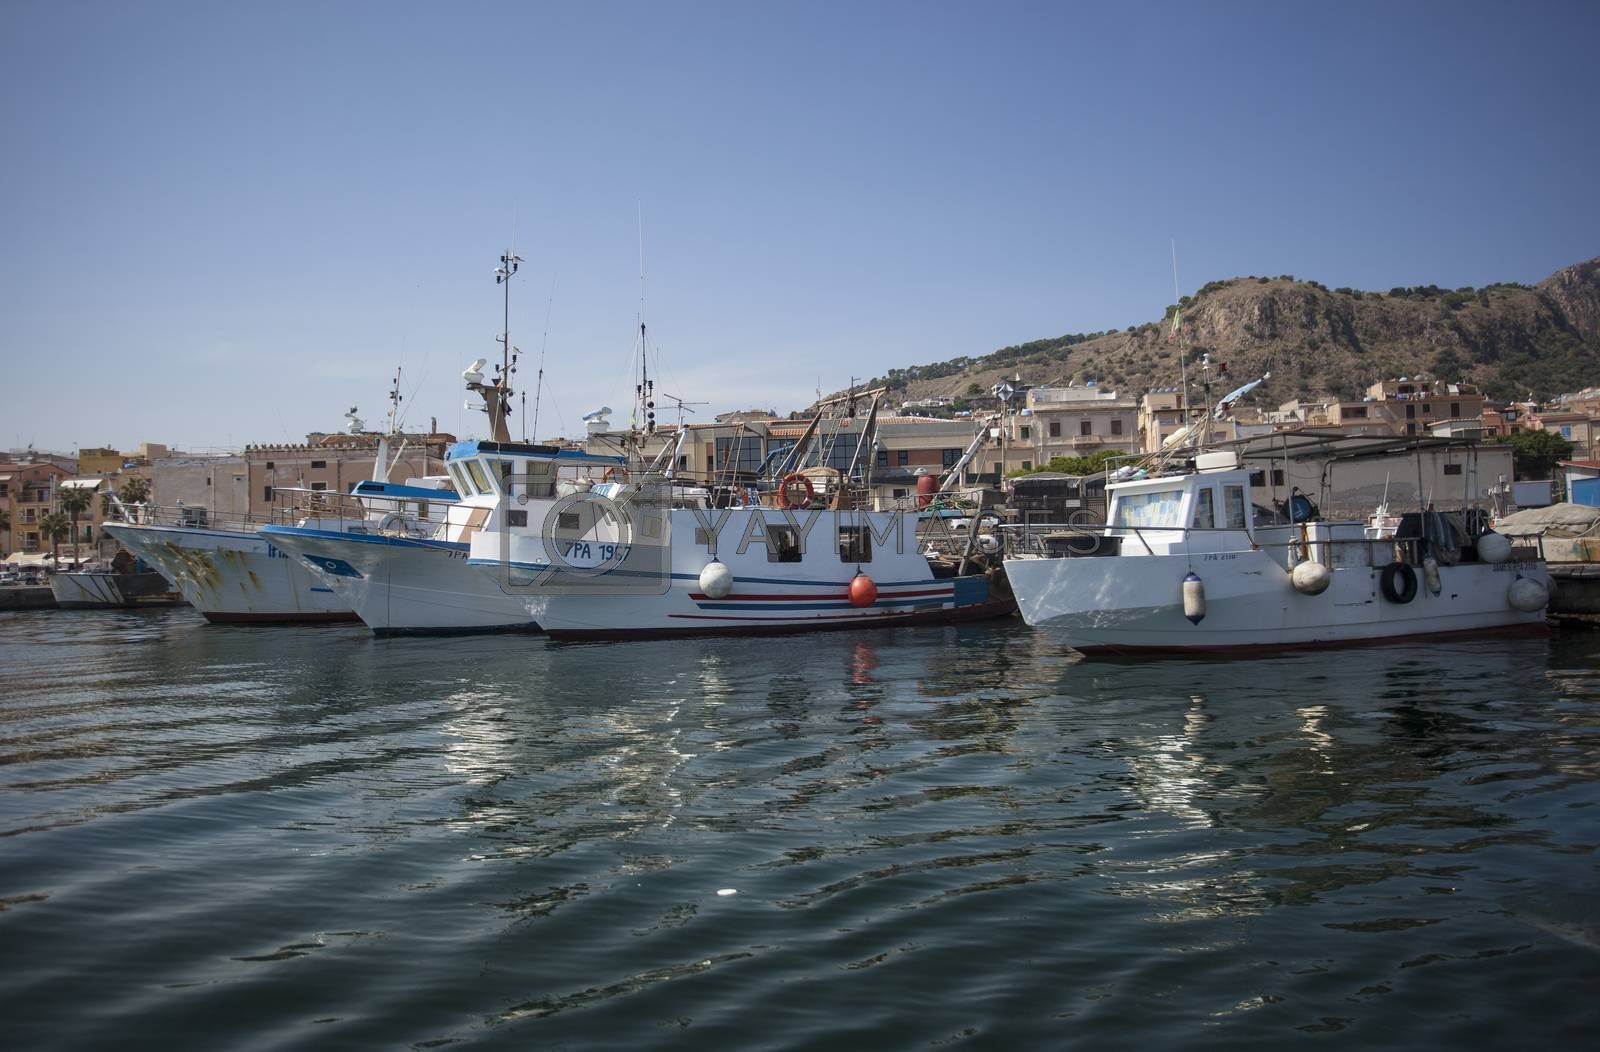 Royalty free image of Bagnera Port in Sicily #5 by pippocarlot